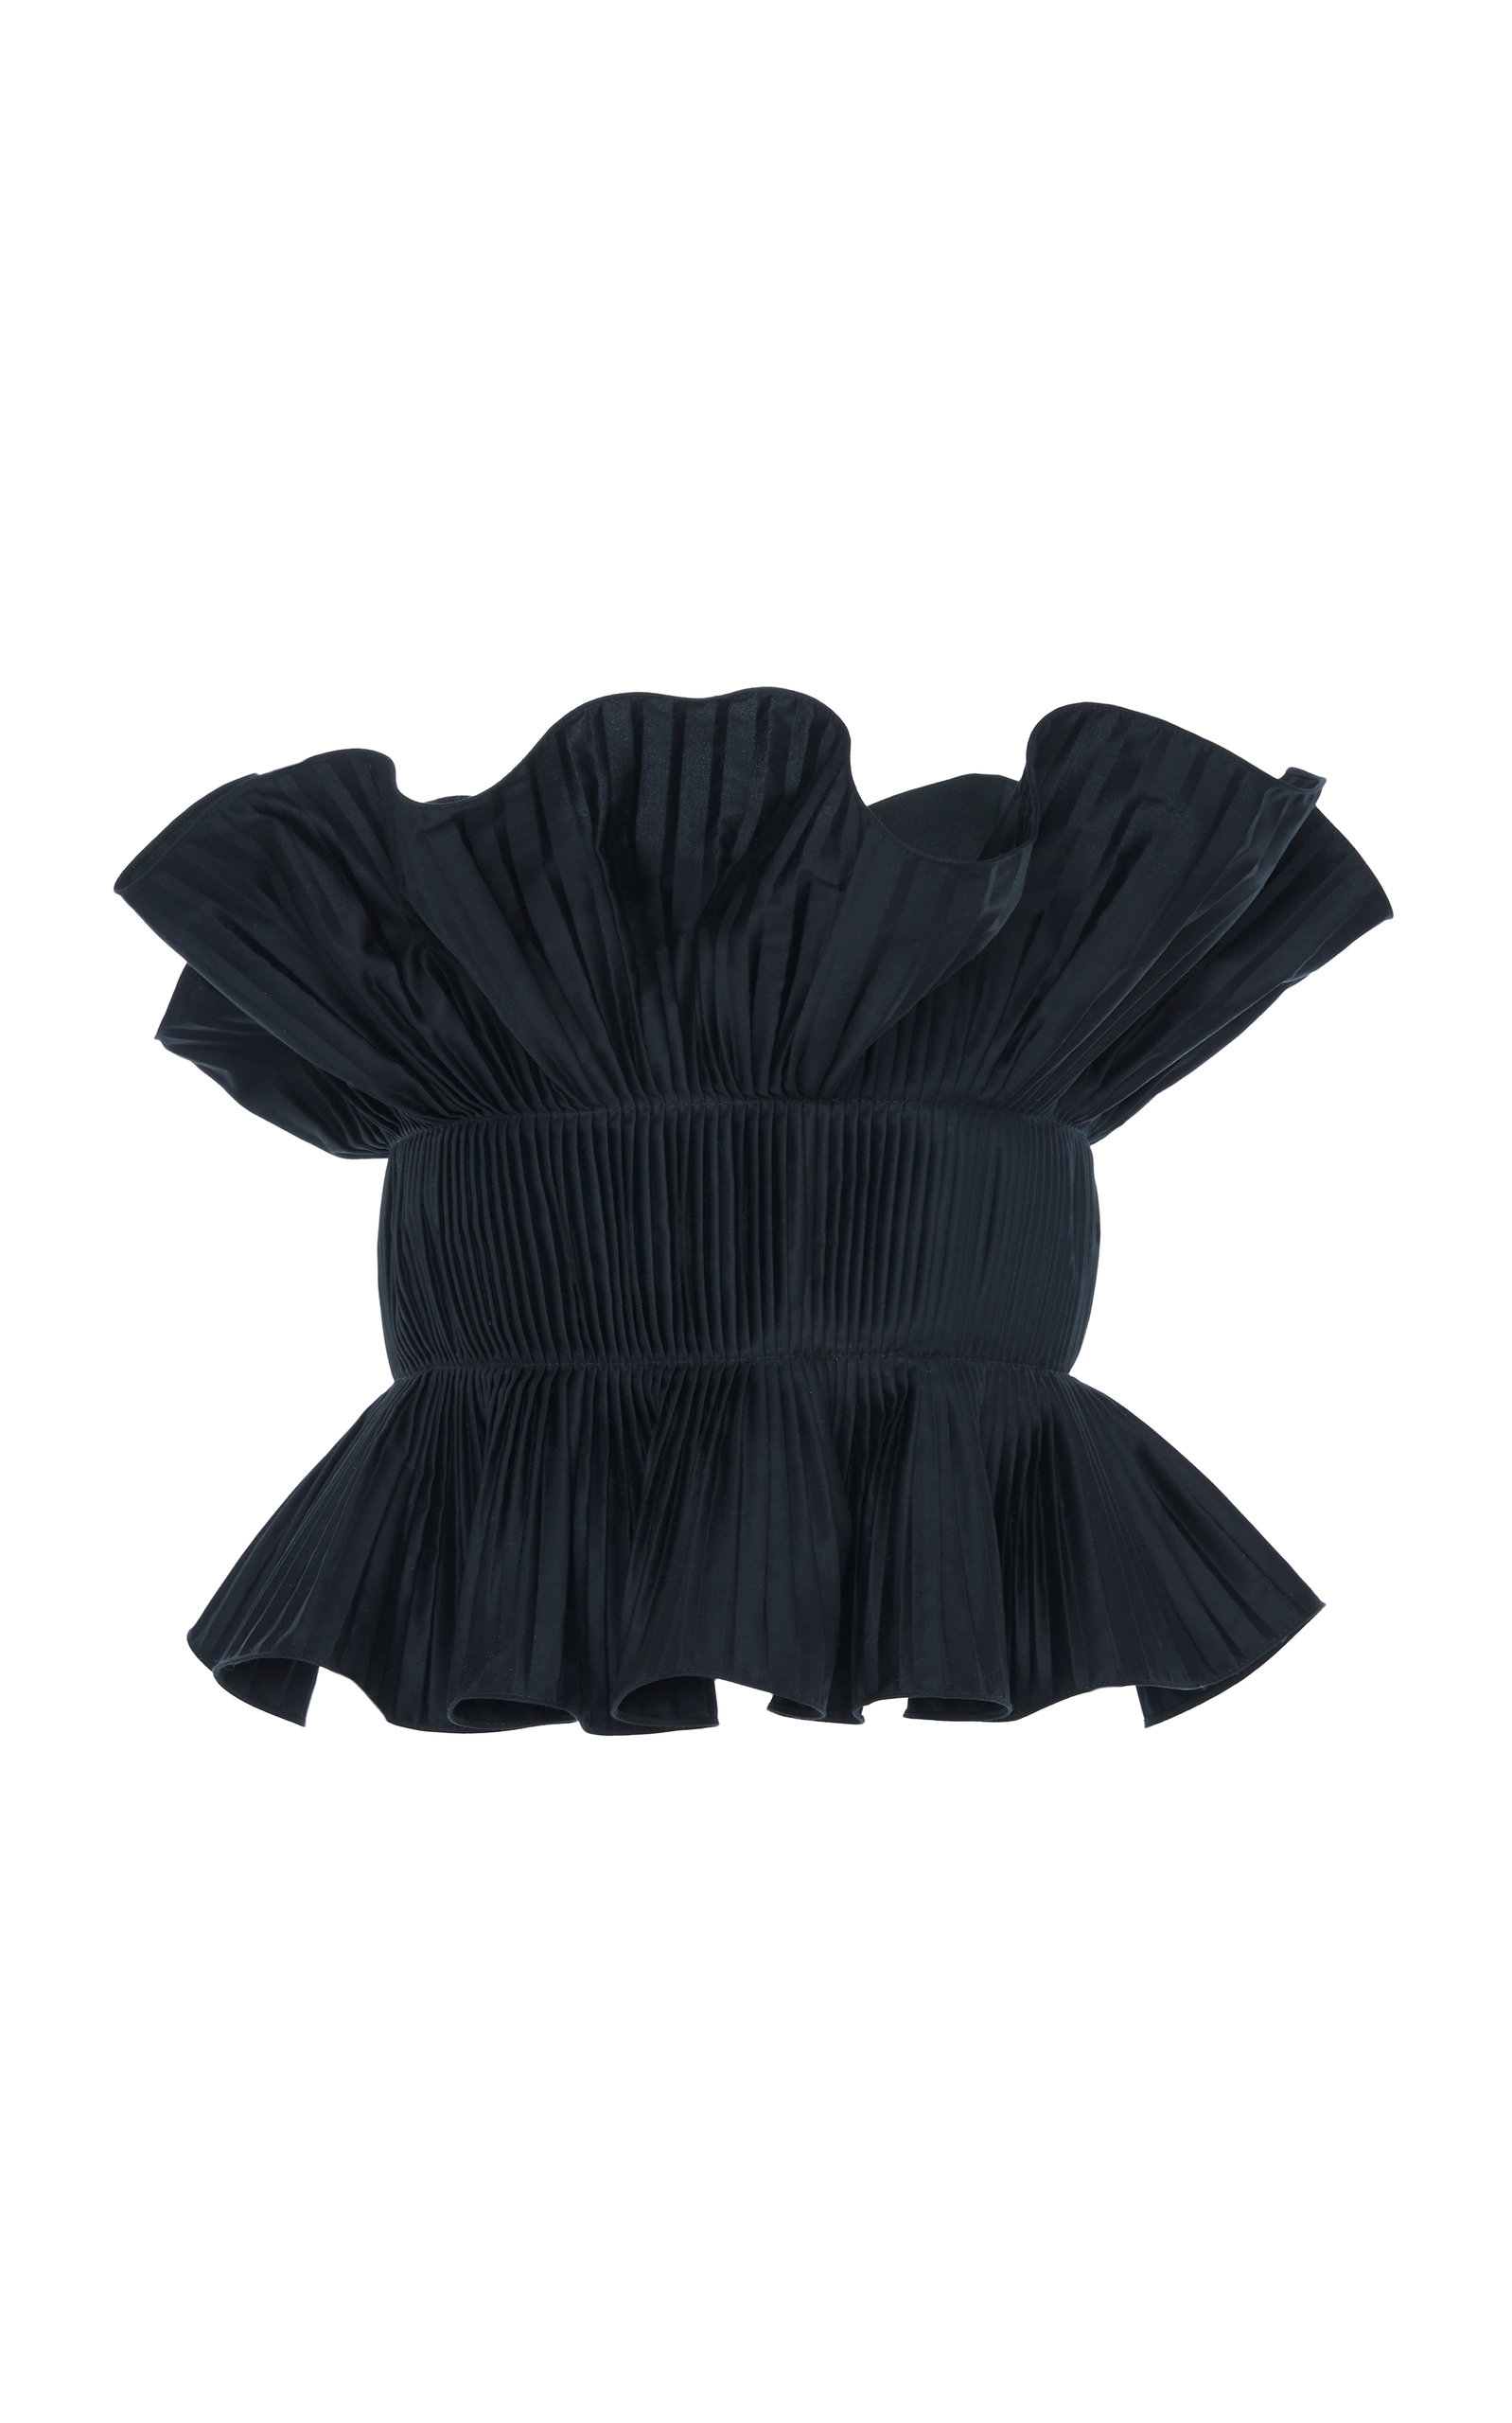 3e1d86b9509 Johanna OrtizAndaliza Hechicera Strapless Pleated Cotton Poplin Top. CLOSE.  Loading